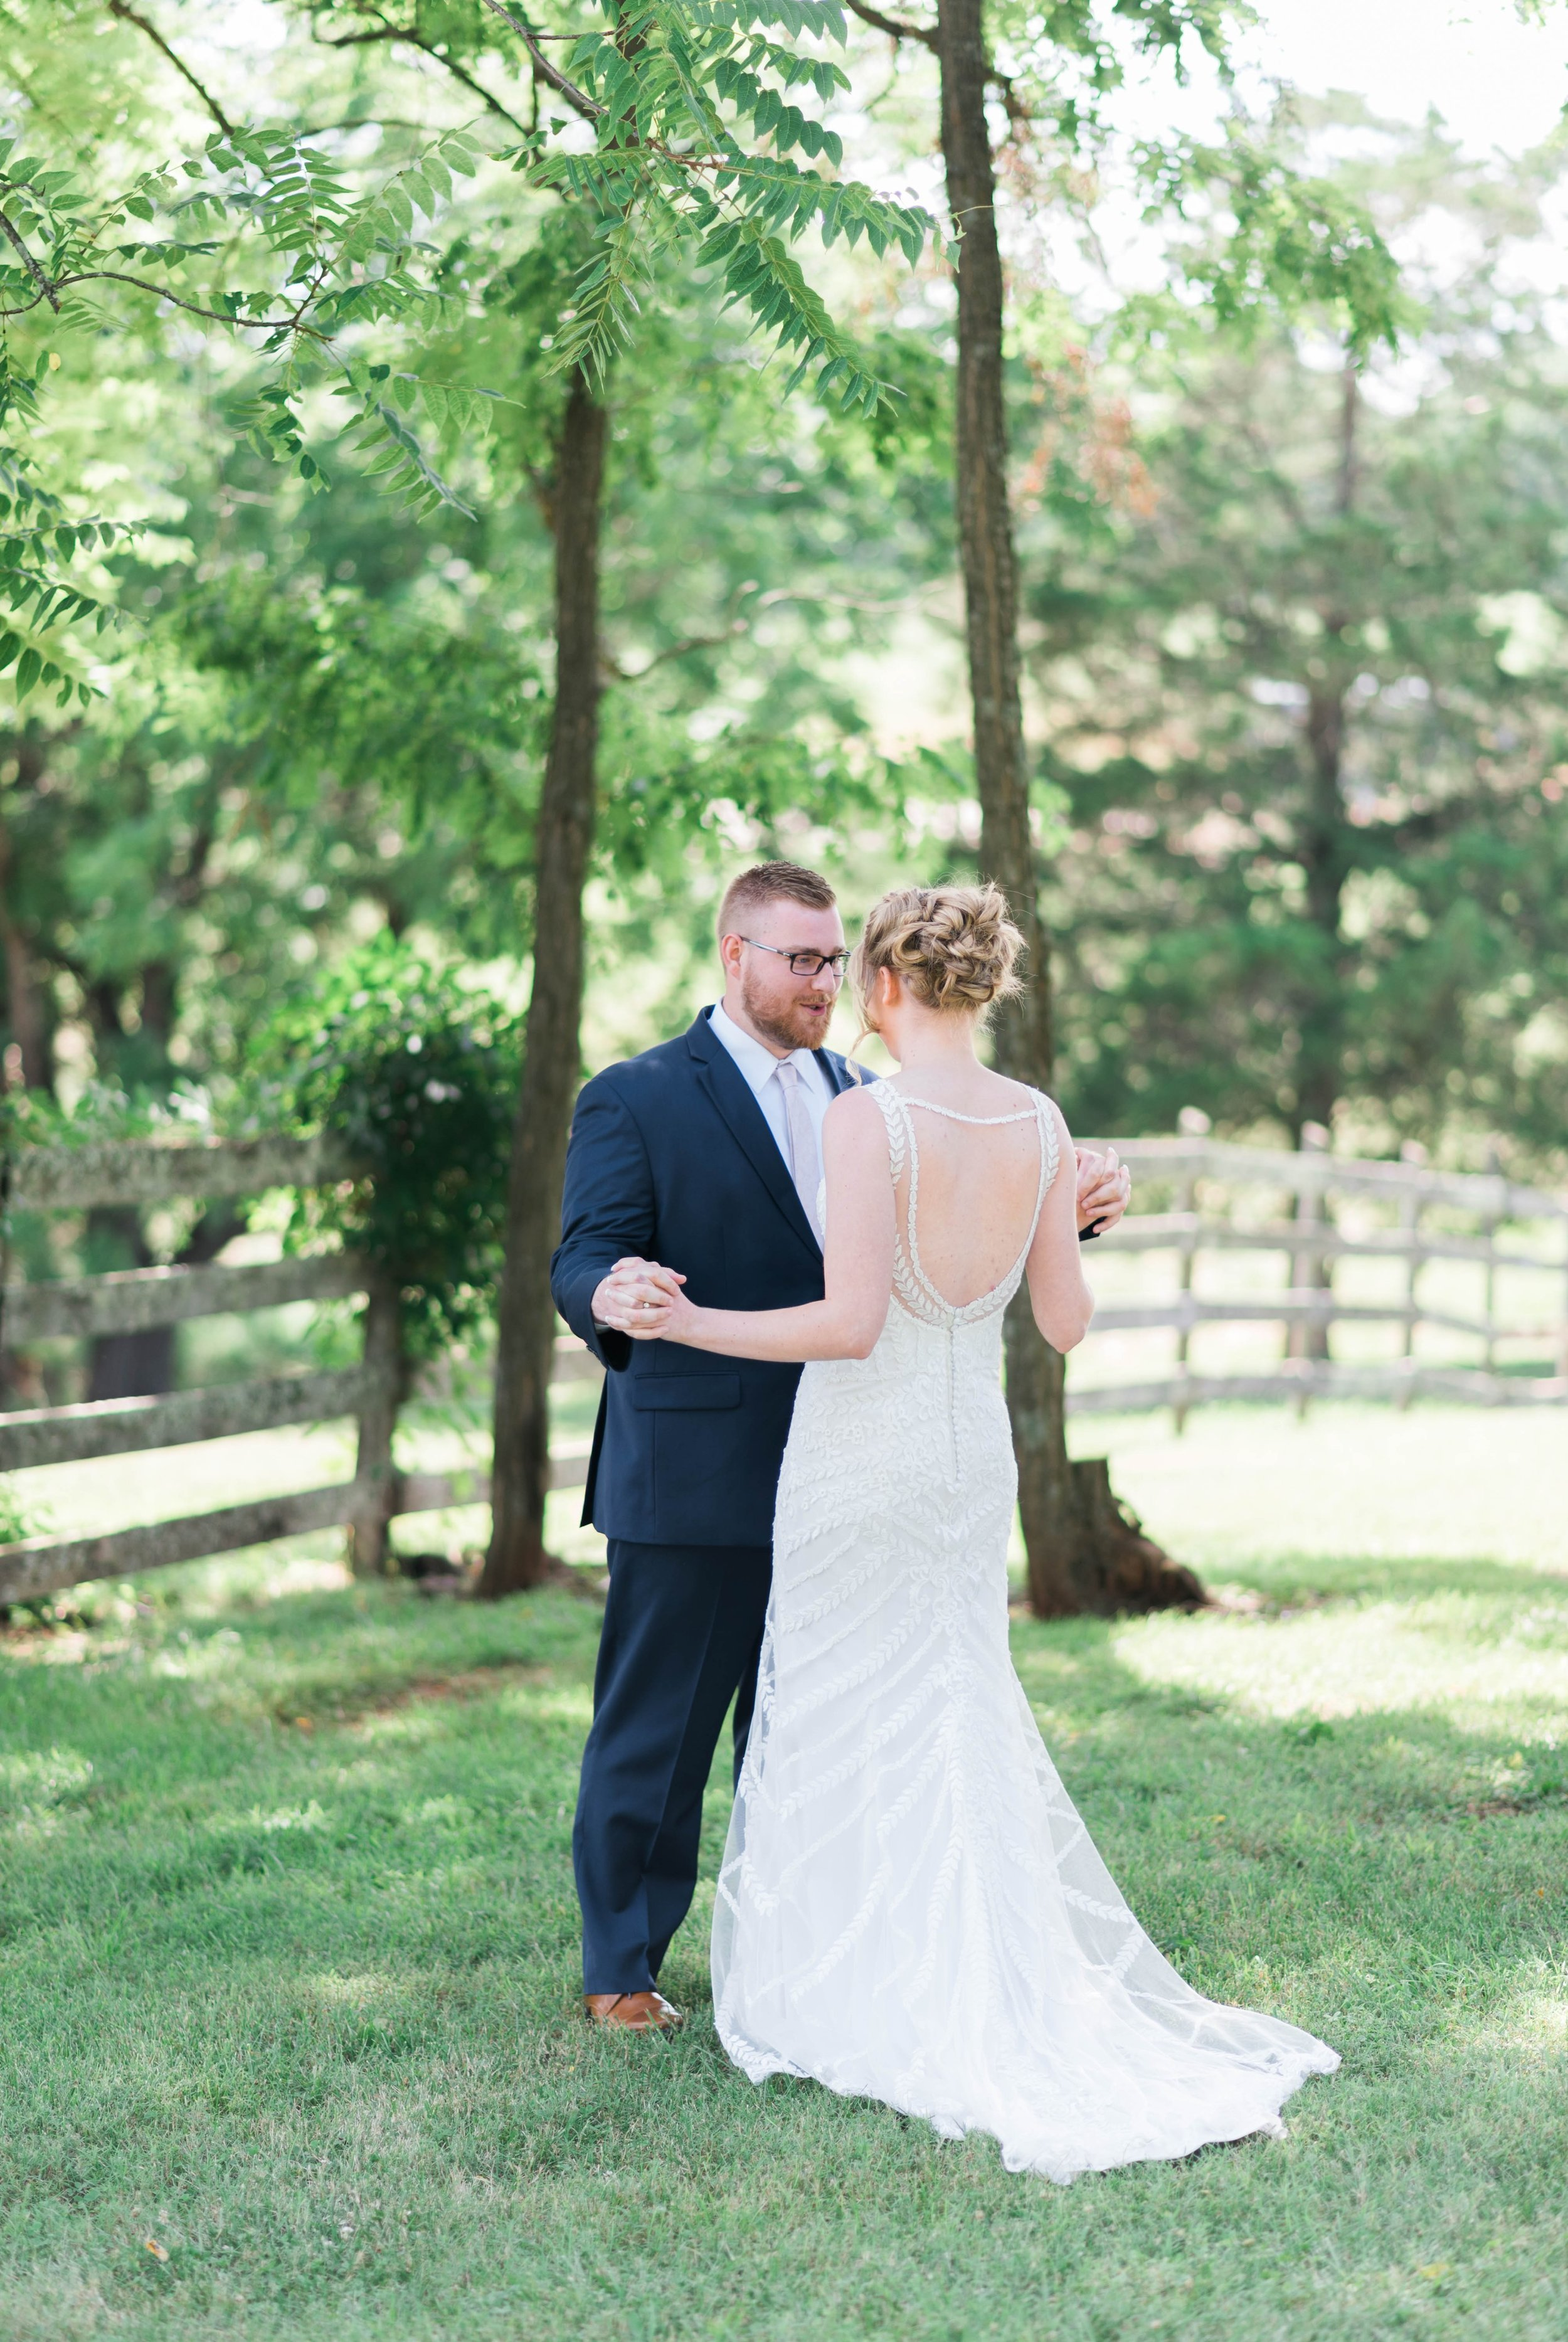 SorellaFarms_VirginiaWeddingPhotographer_BarnWedding_Lynchburgweddingphotographer_DanielleTyler 28.jpg